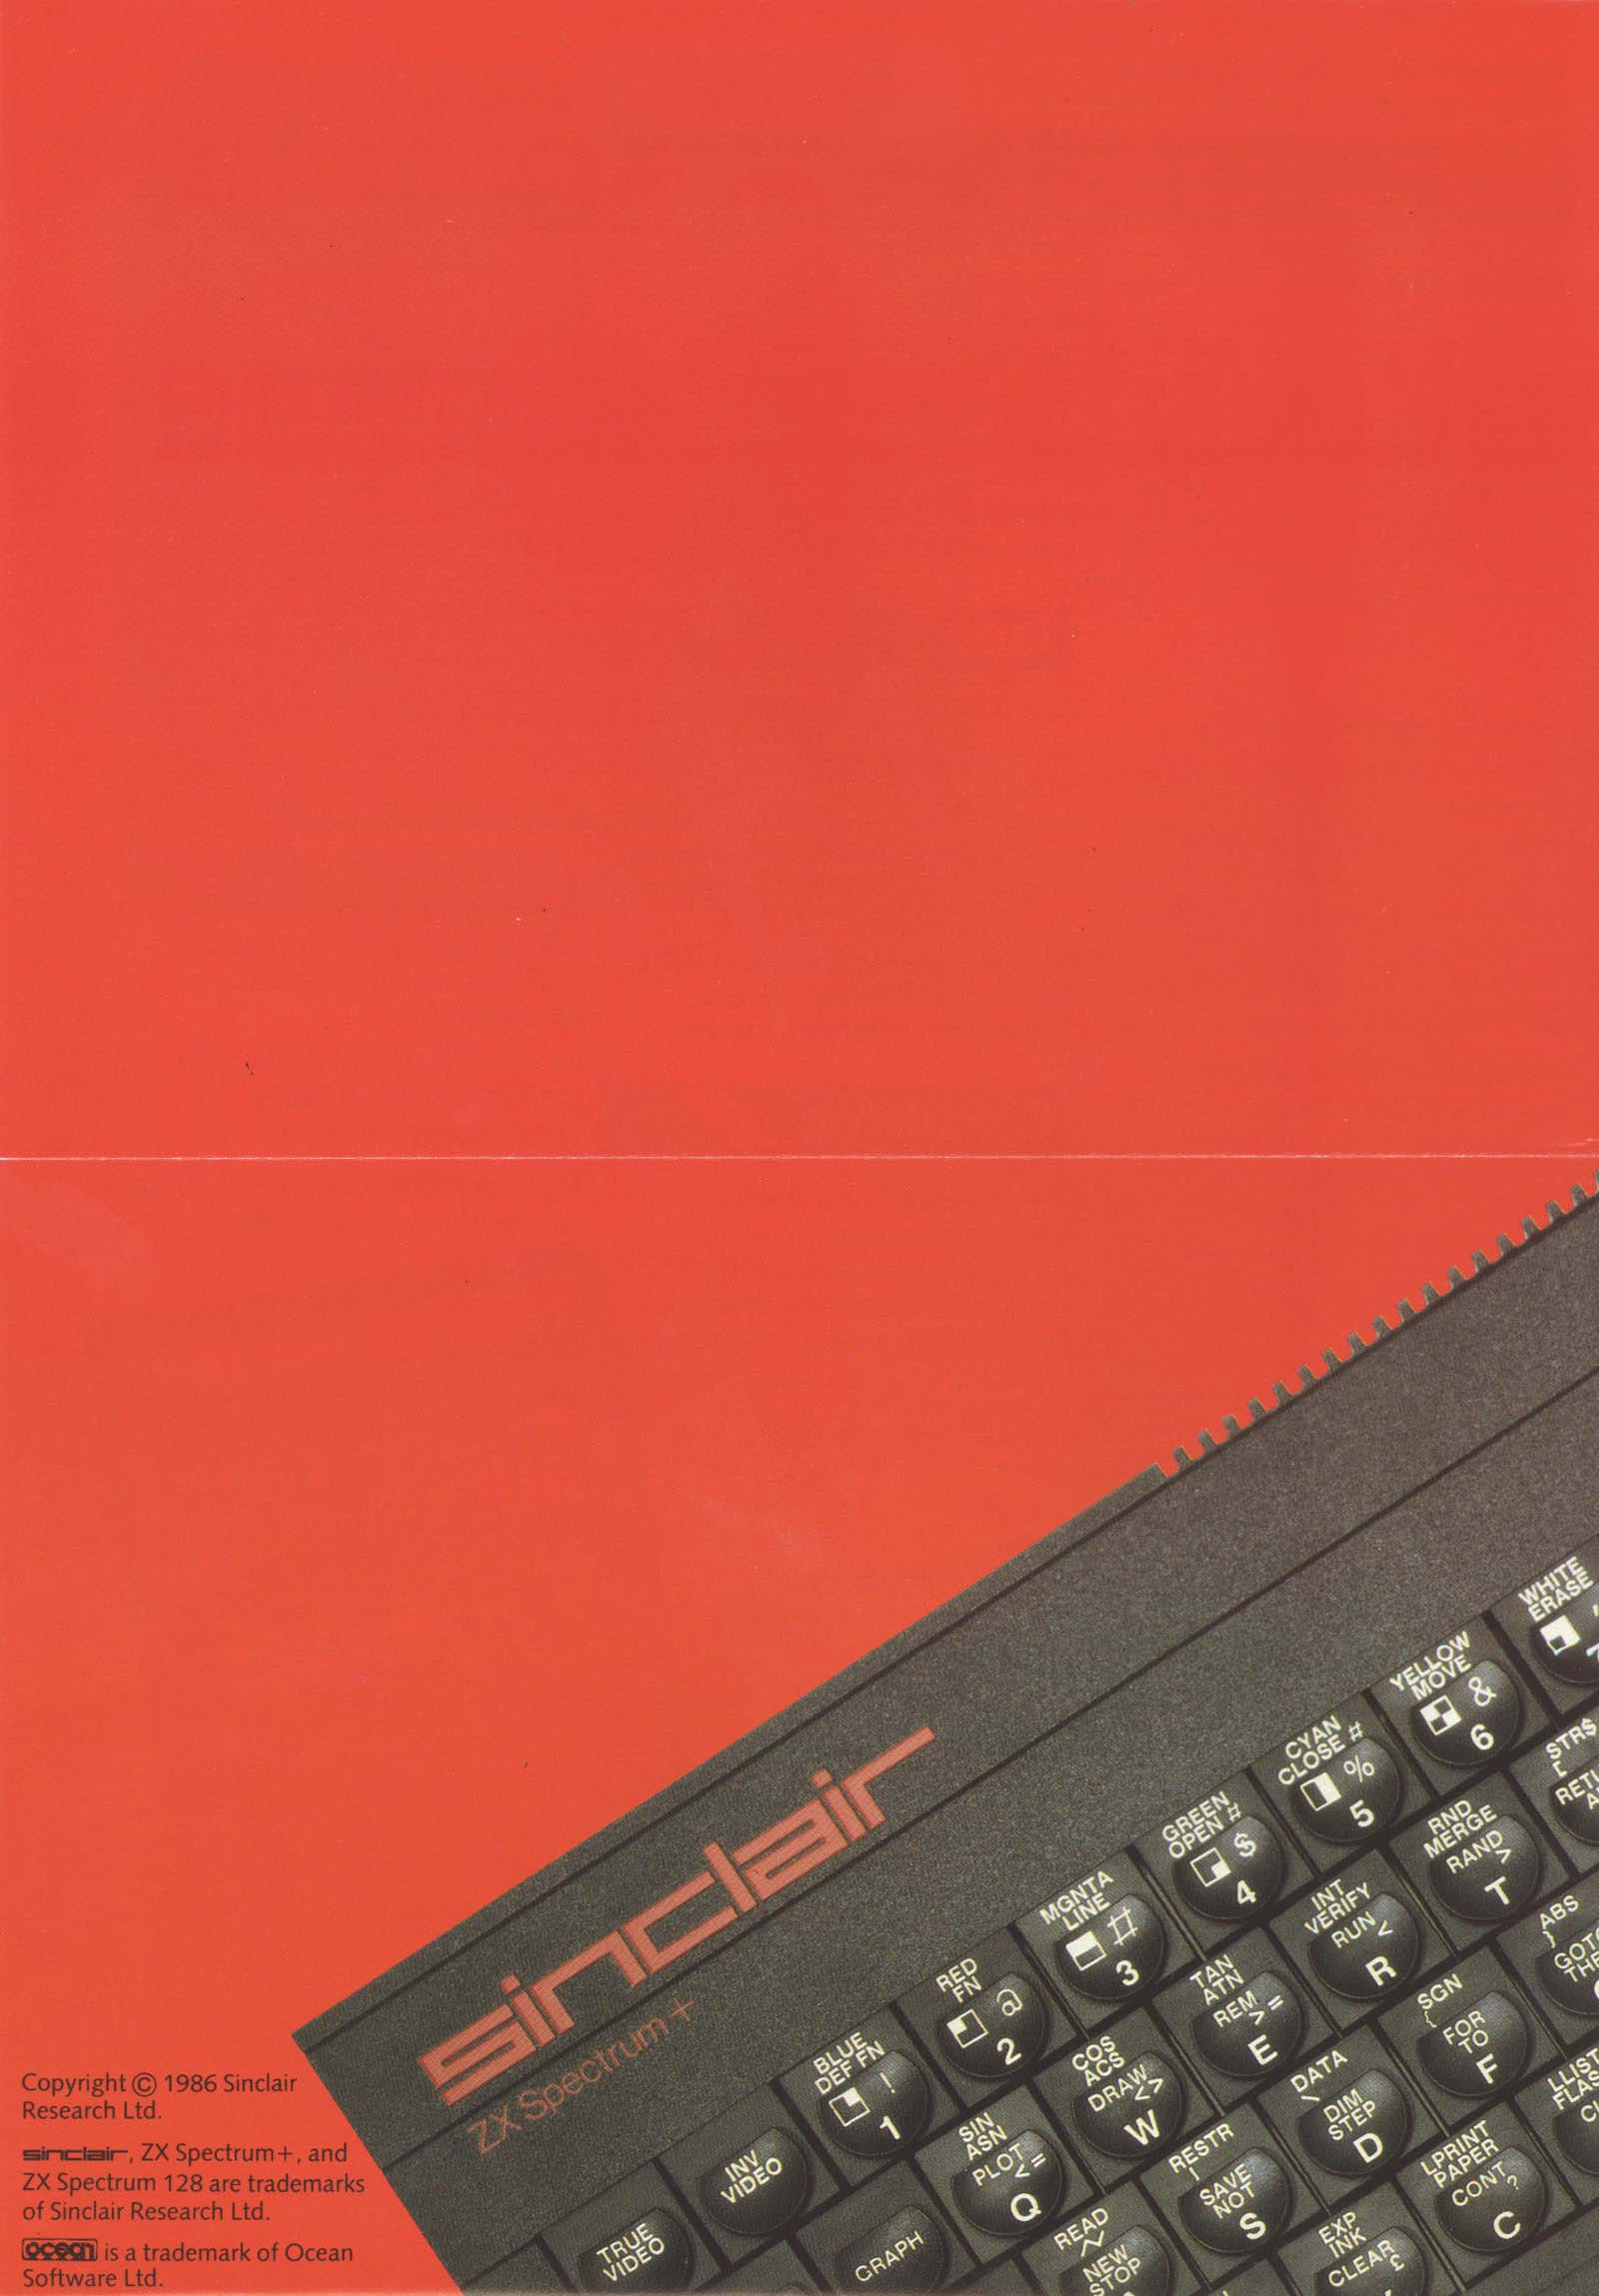 Get your hands on a ZX Spectrum 128K